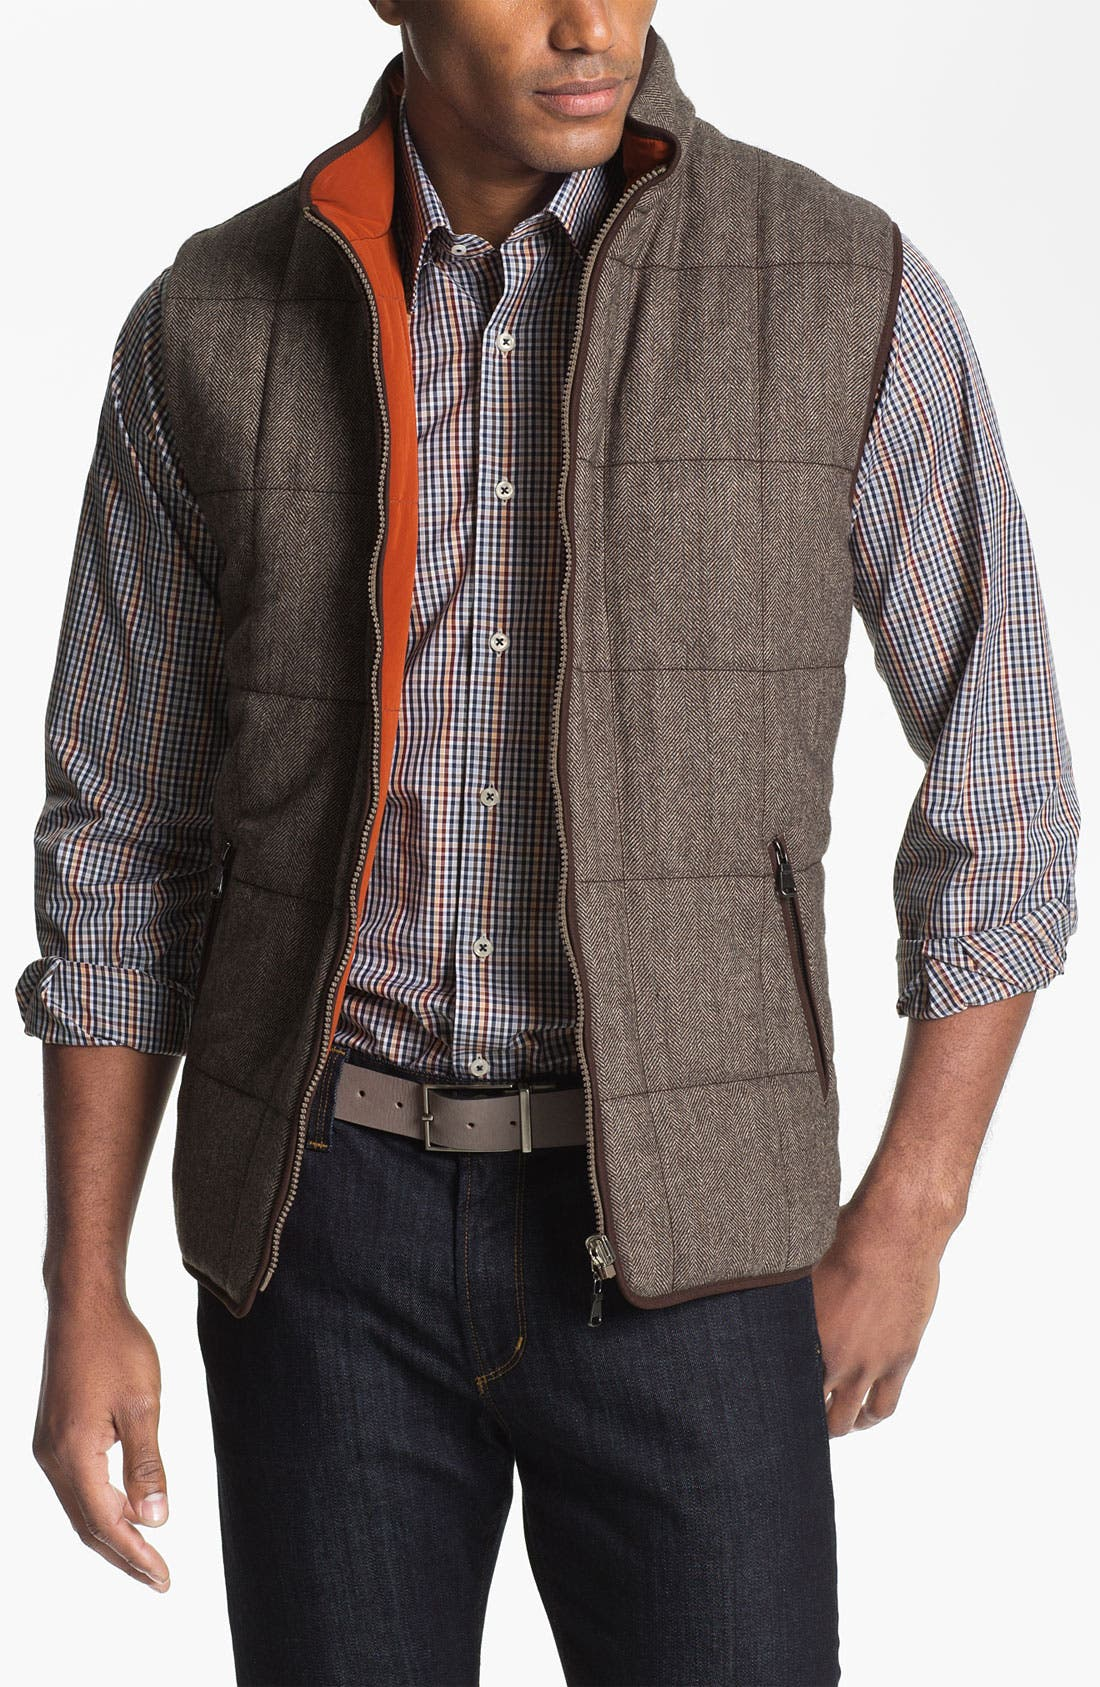 Main Image - Tommy Bahama 'Fully Vested' Reversible Vest